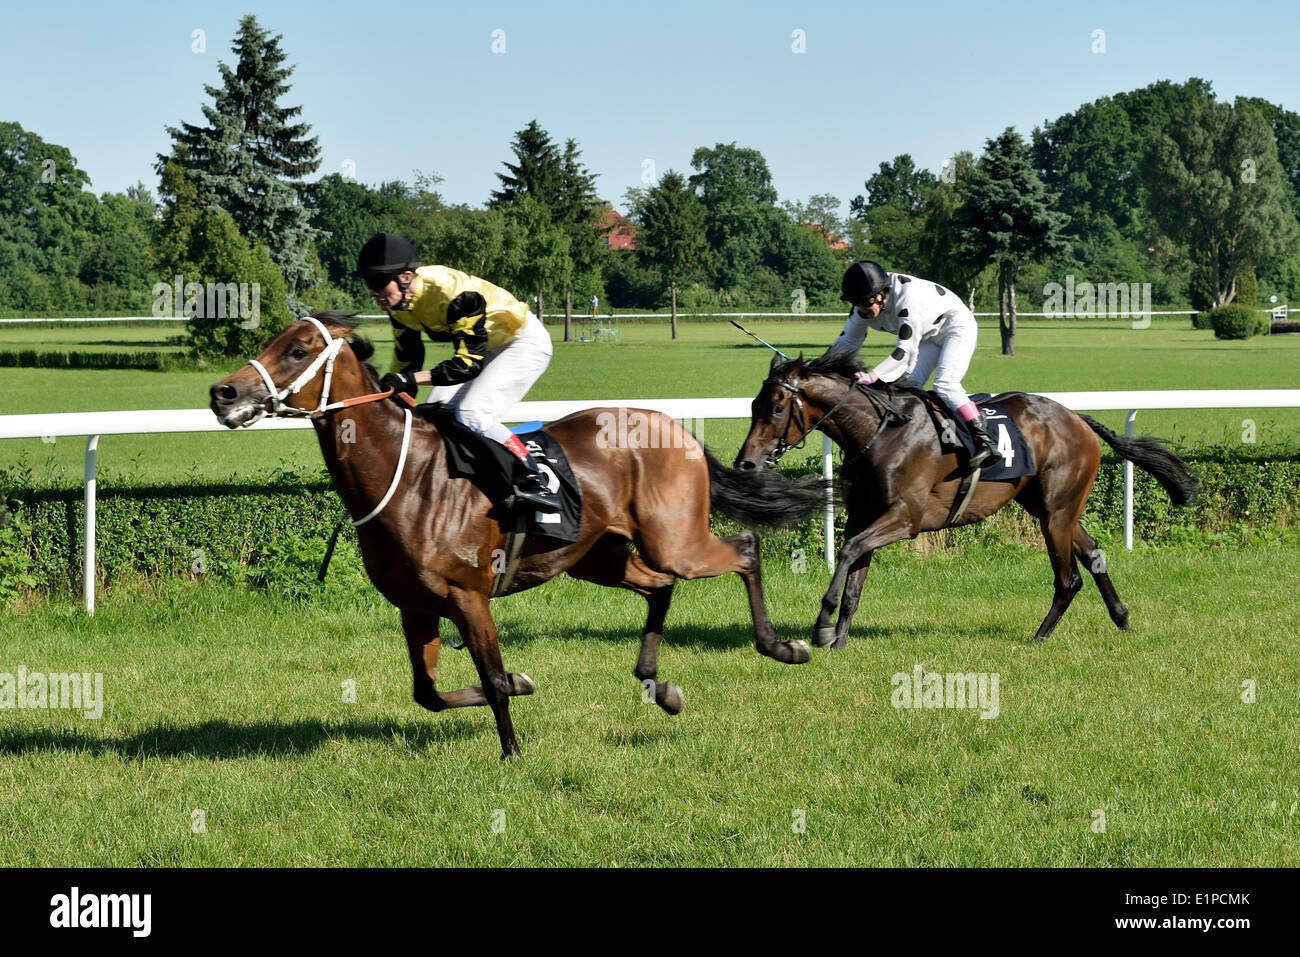 Wroclaw, Poland. 08th June, 2014. Horse race for the prize of the President of the City of Wroclaw on Juni 8, 2014. Race wins horse Silvaner with the number 7, son of the legendary horse Lomitas. - Stock Image